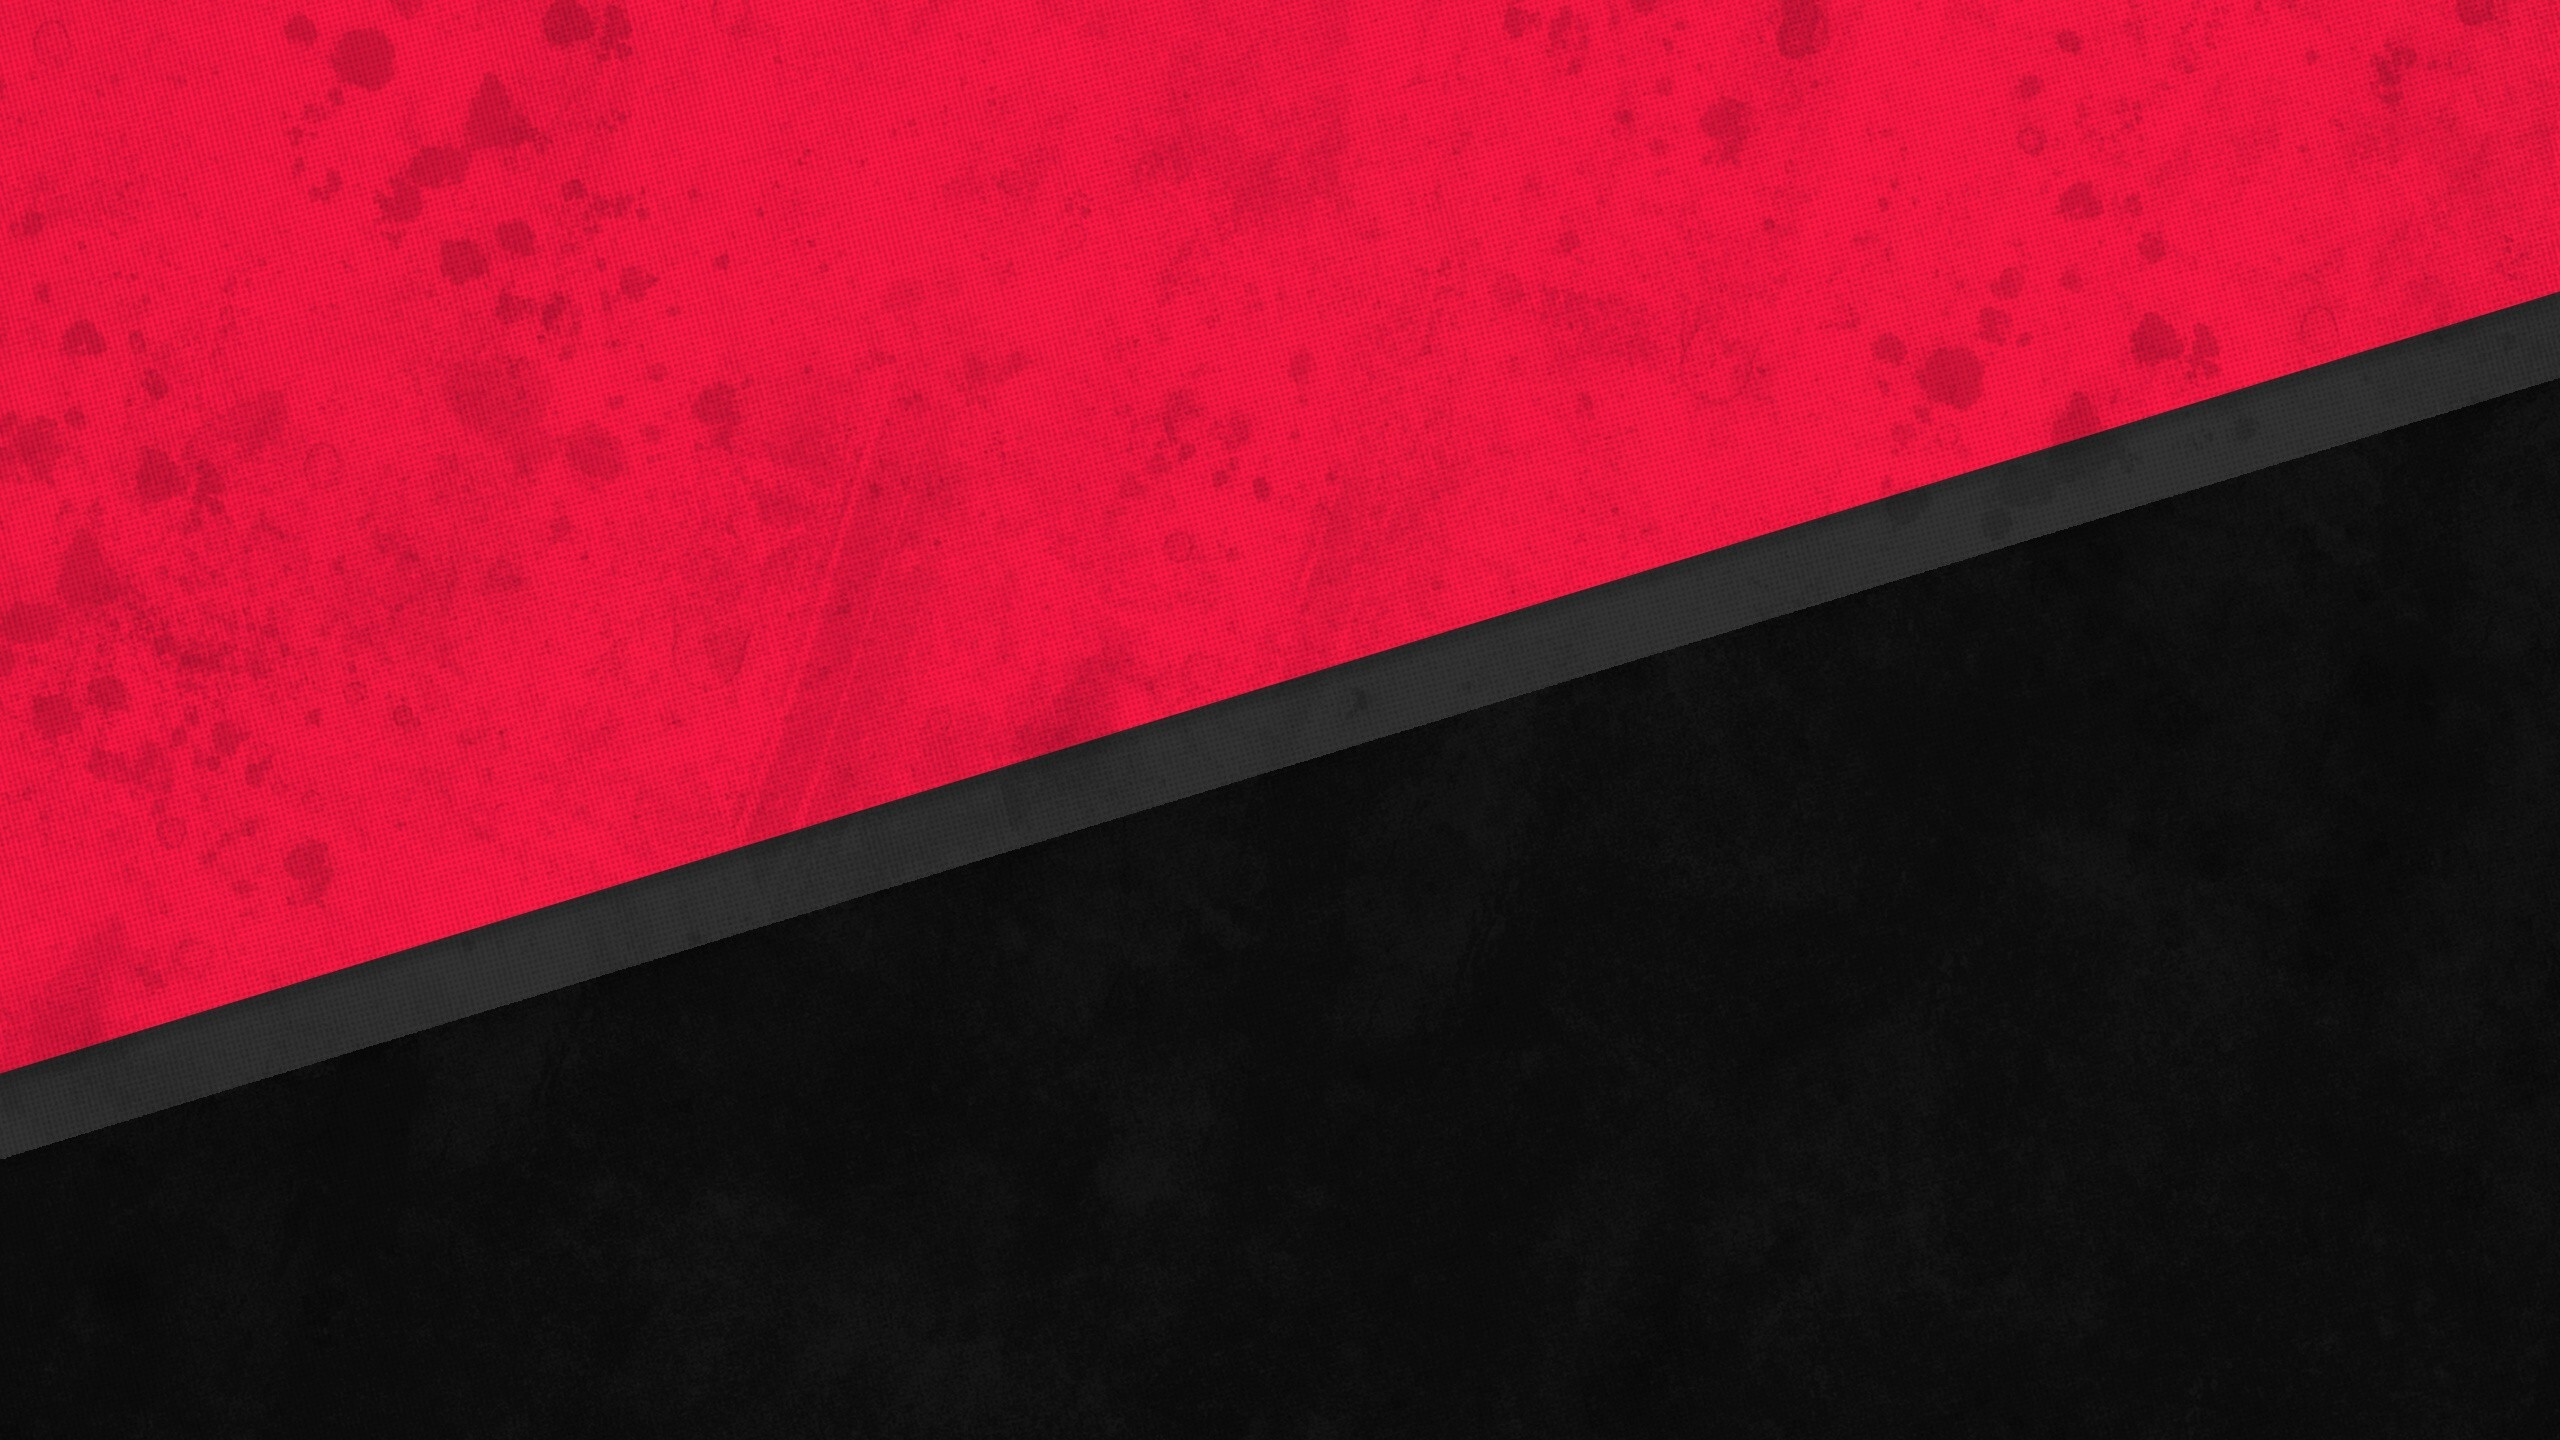 2560x1440 Red Black Texture 1440p Resolution Hd 4k Wallpapers Images Backgrounds Photos And Pictures